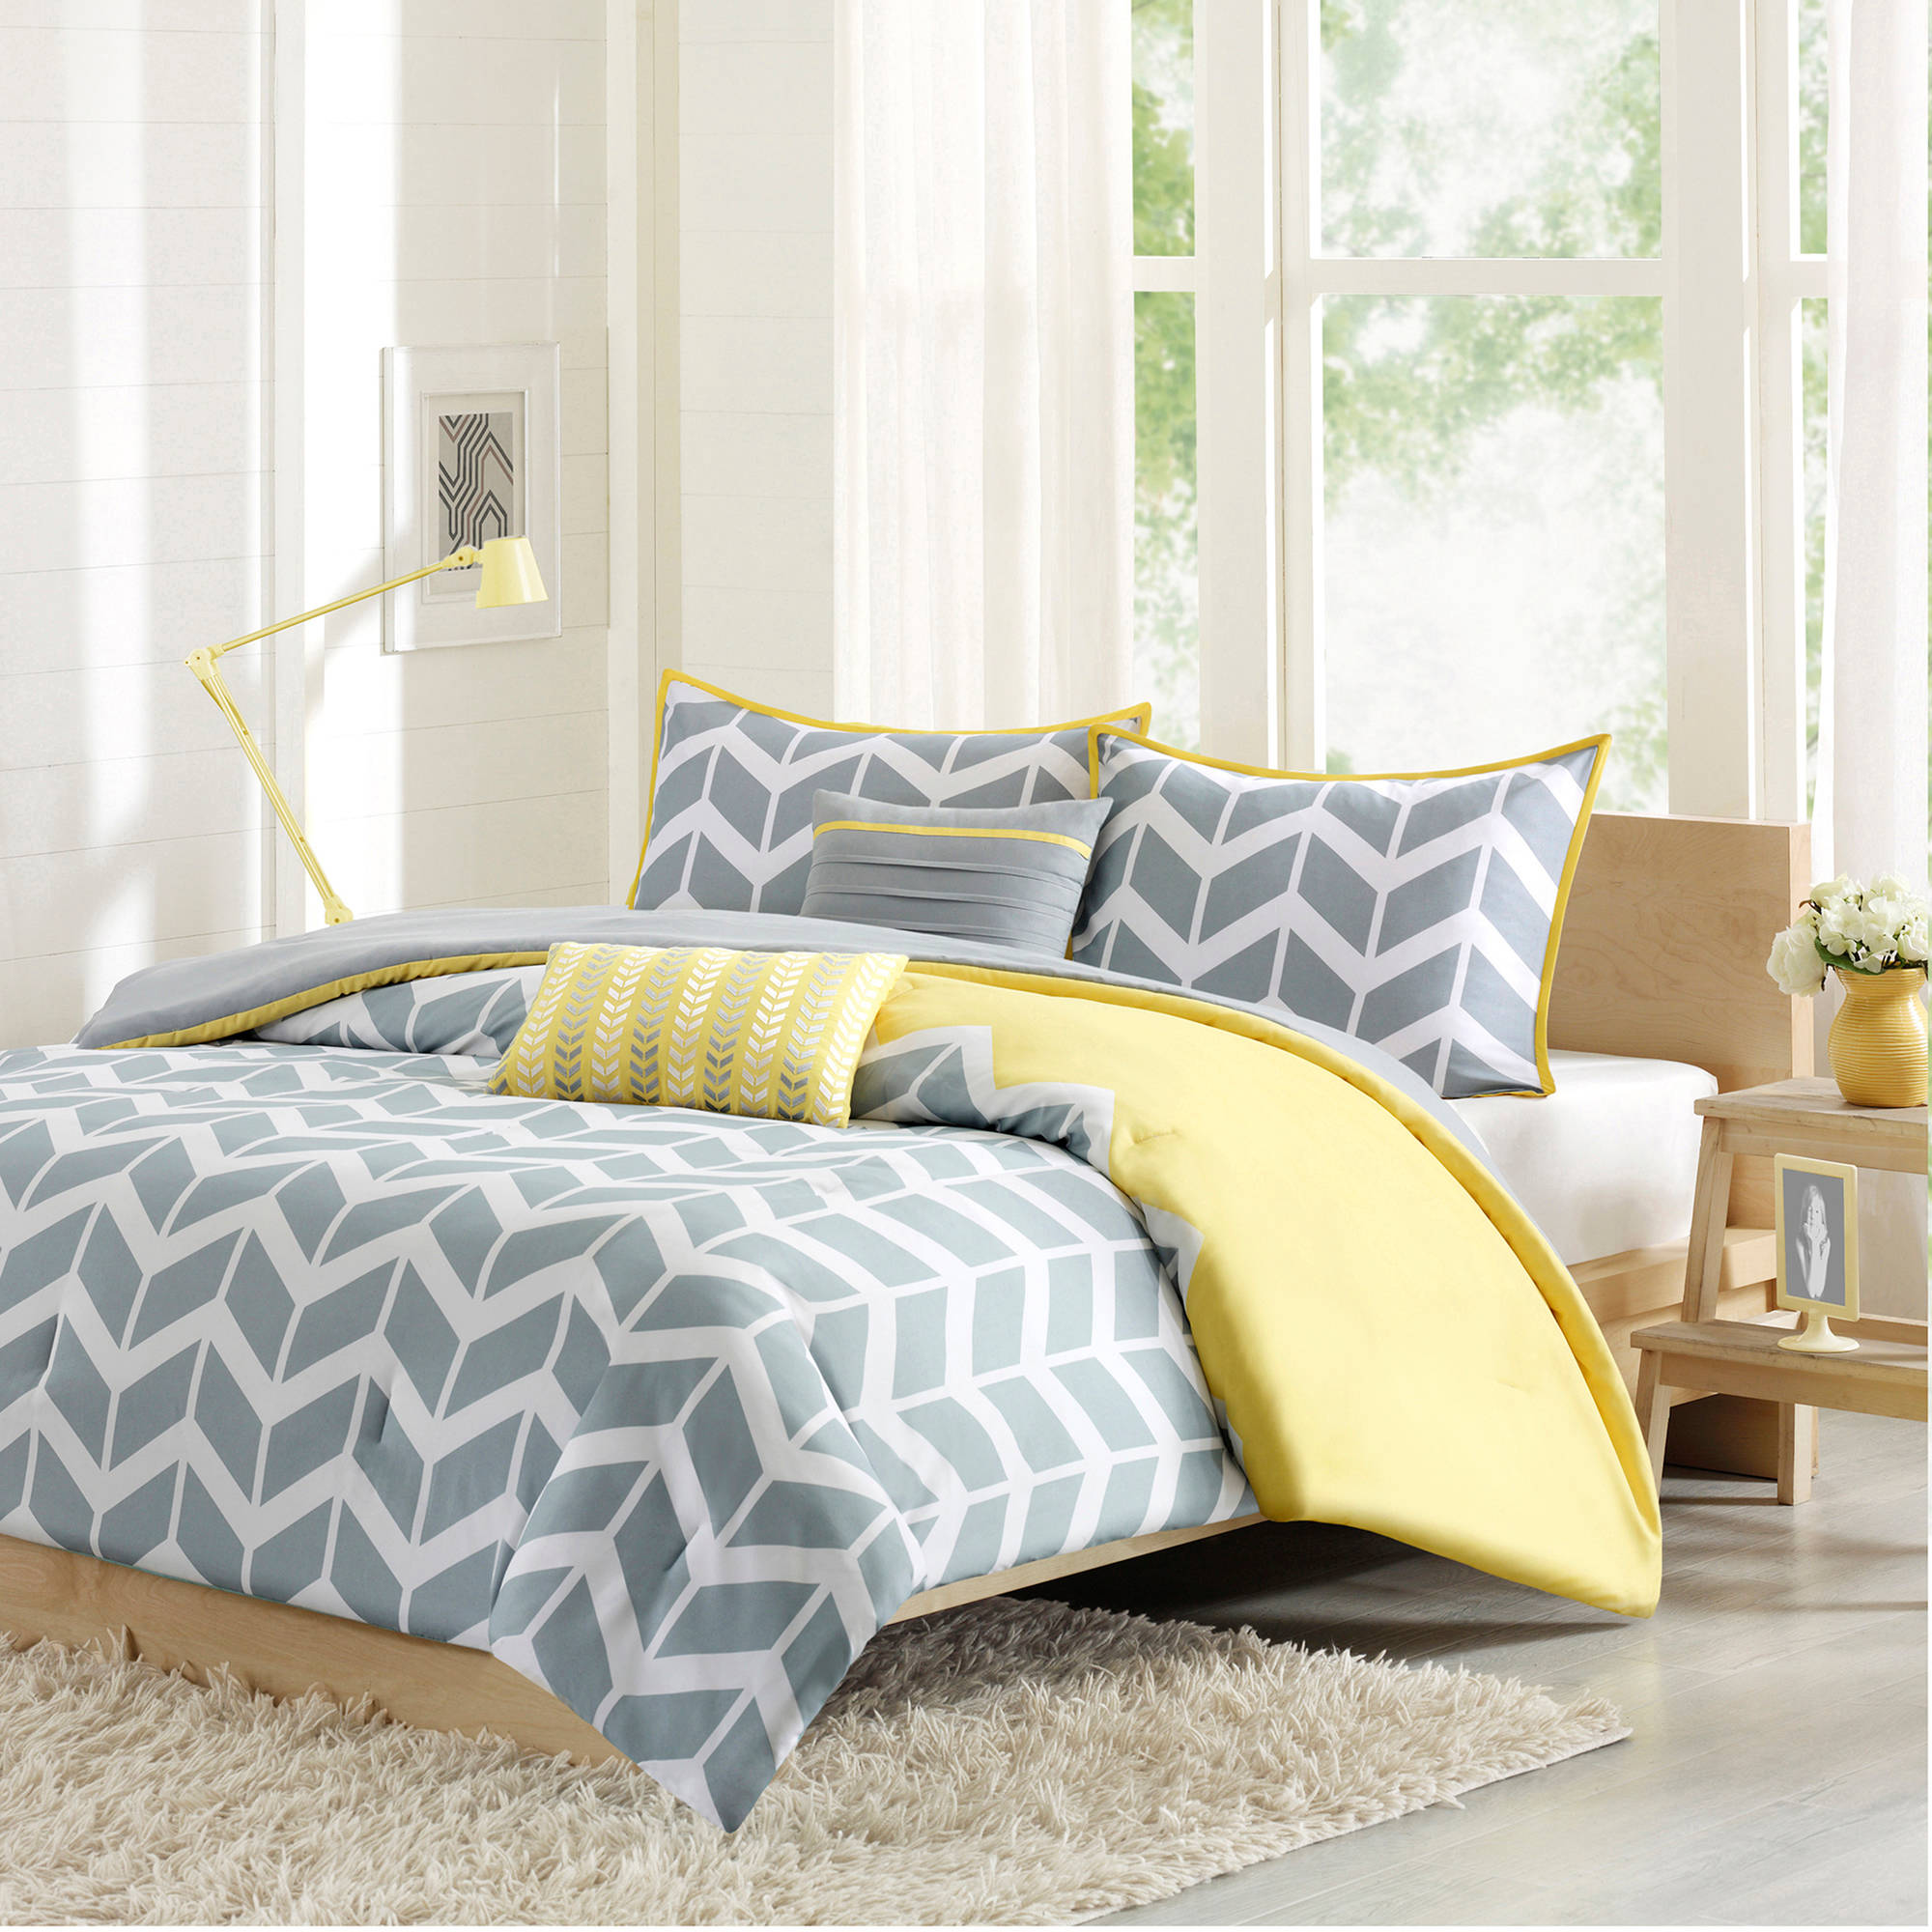 Comforter Set Queen Size Yellow Gray White Chevron Design Bedroom Bed  Bedspread